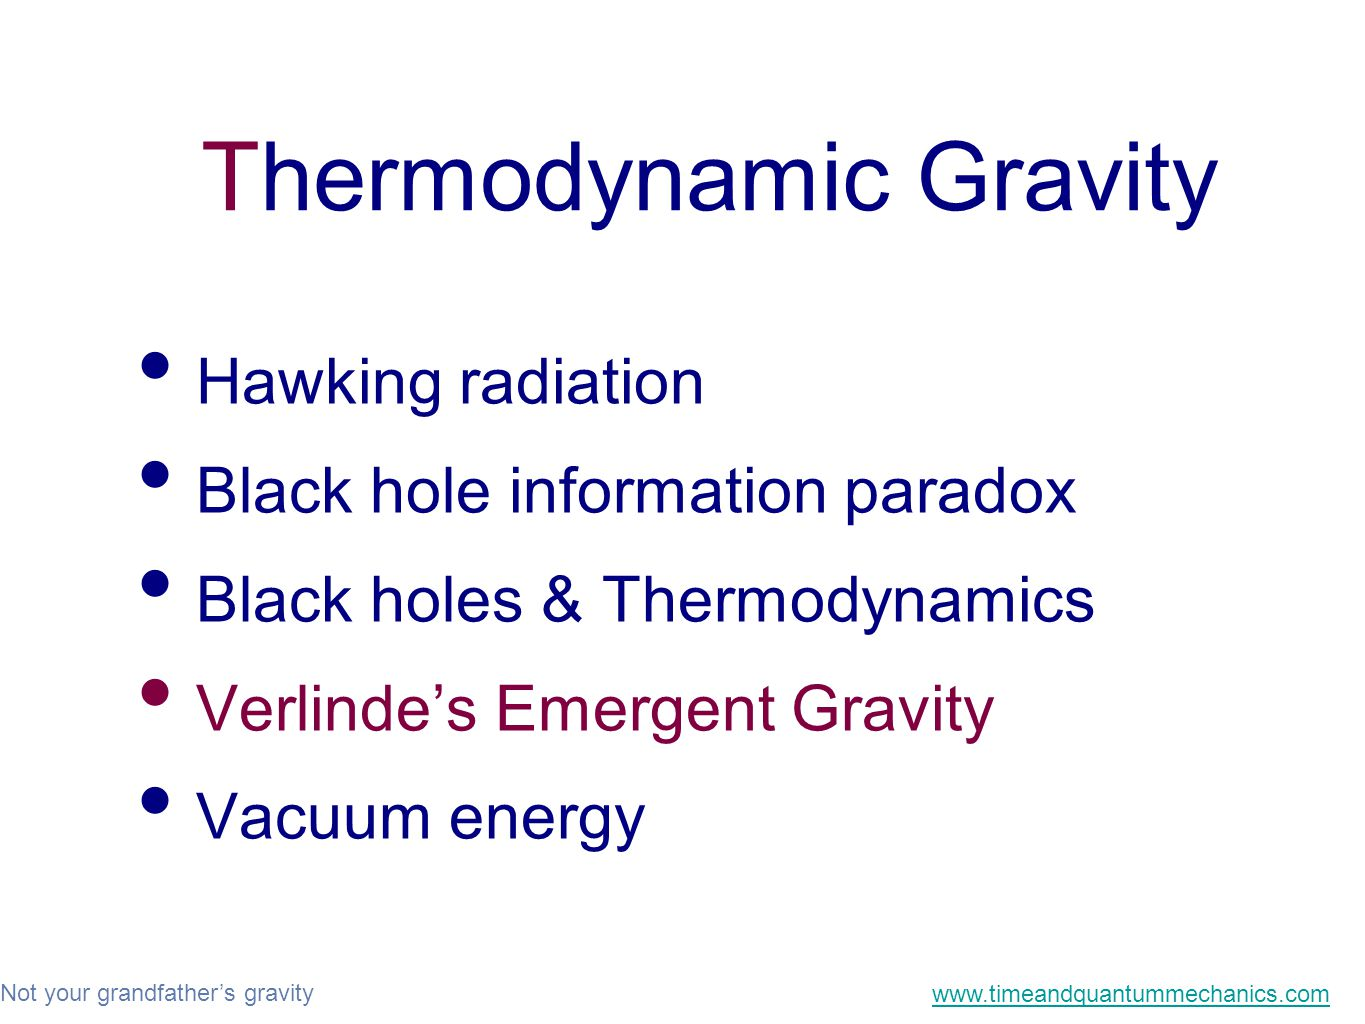 Not your grandfather's gravity www.timeandquantummechanics.com Thermodynamic Gravity Hawking radiation Black hole information paradox Black holes & Thermodynamics Verlinde's Emergent Gravity Vacuum energy